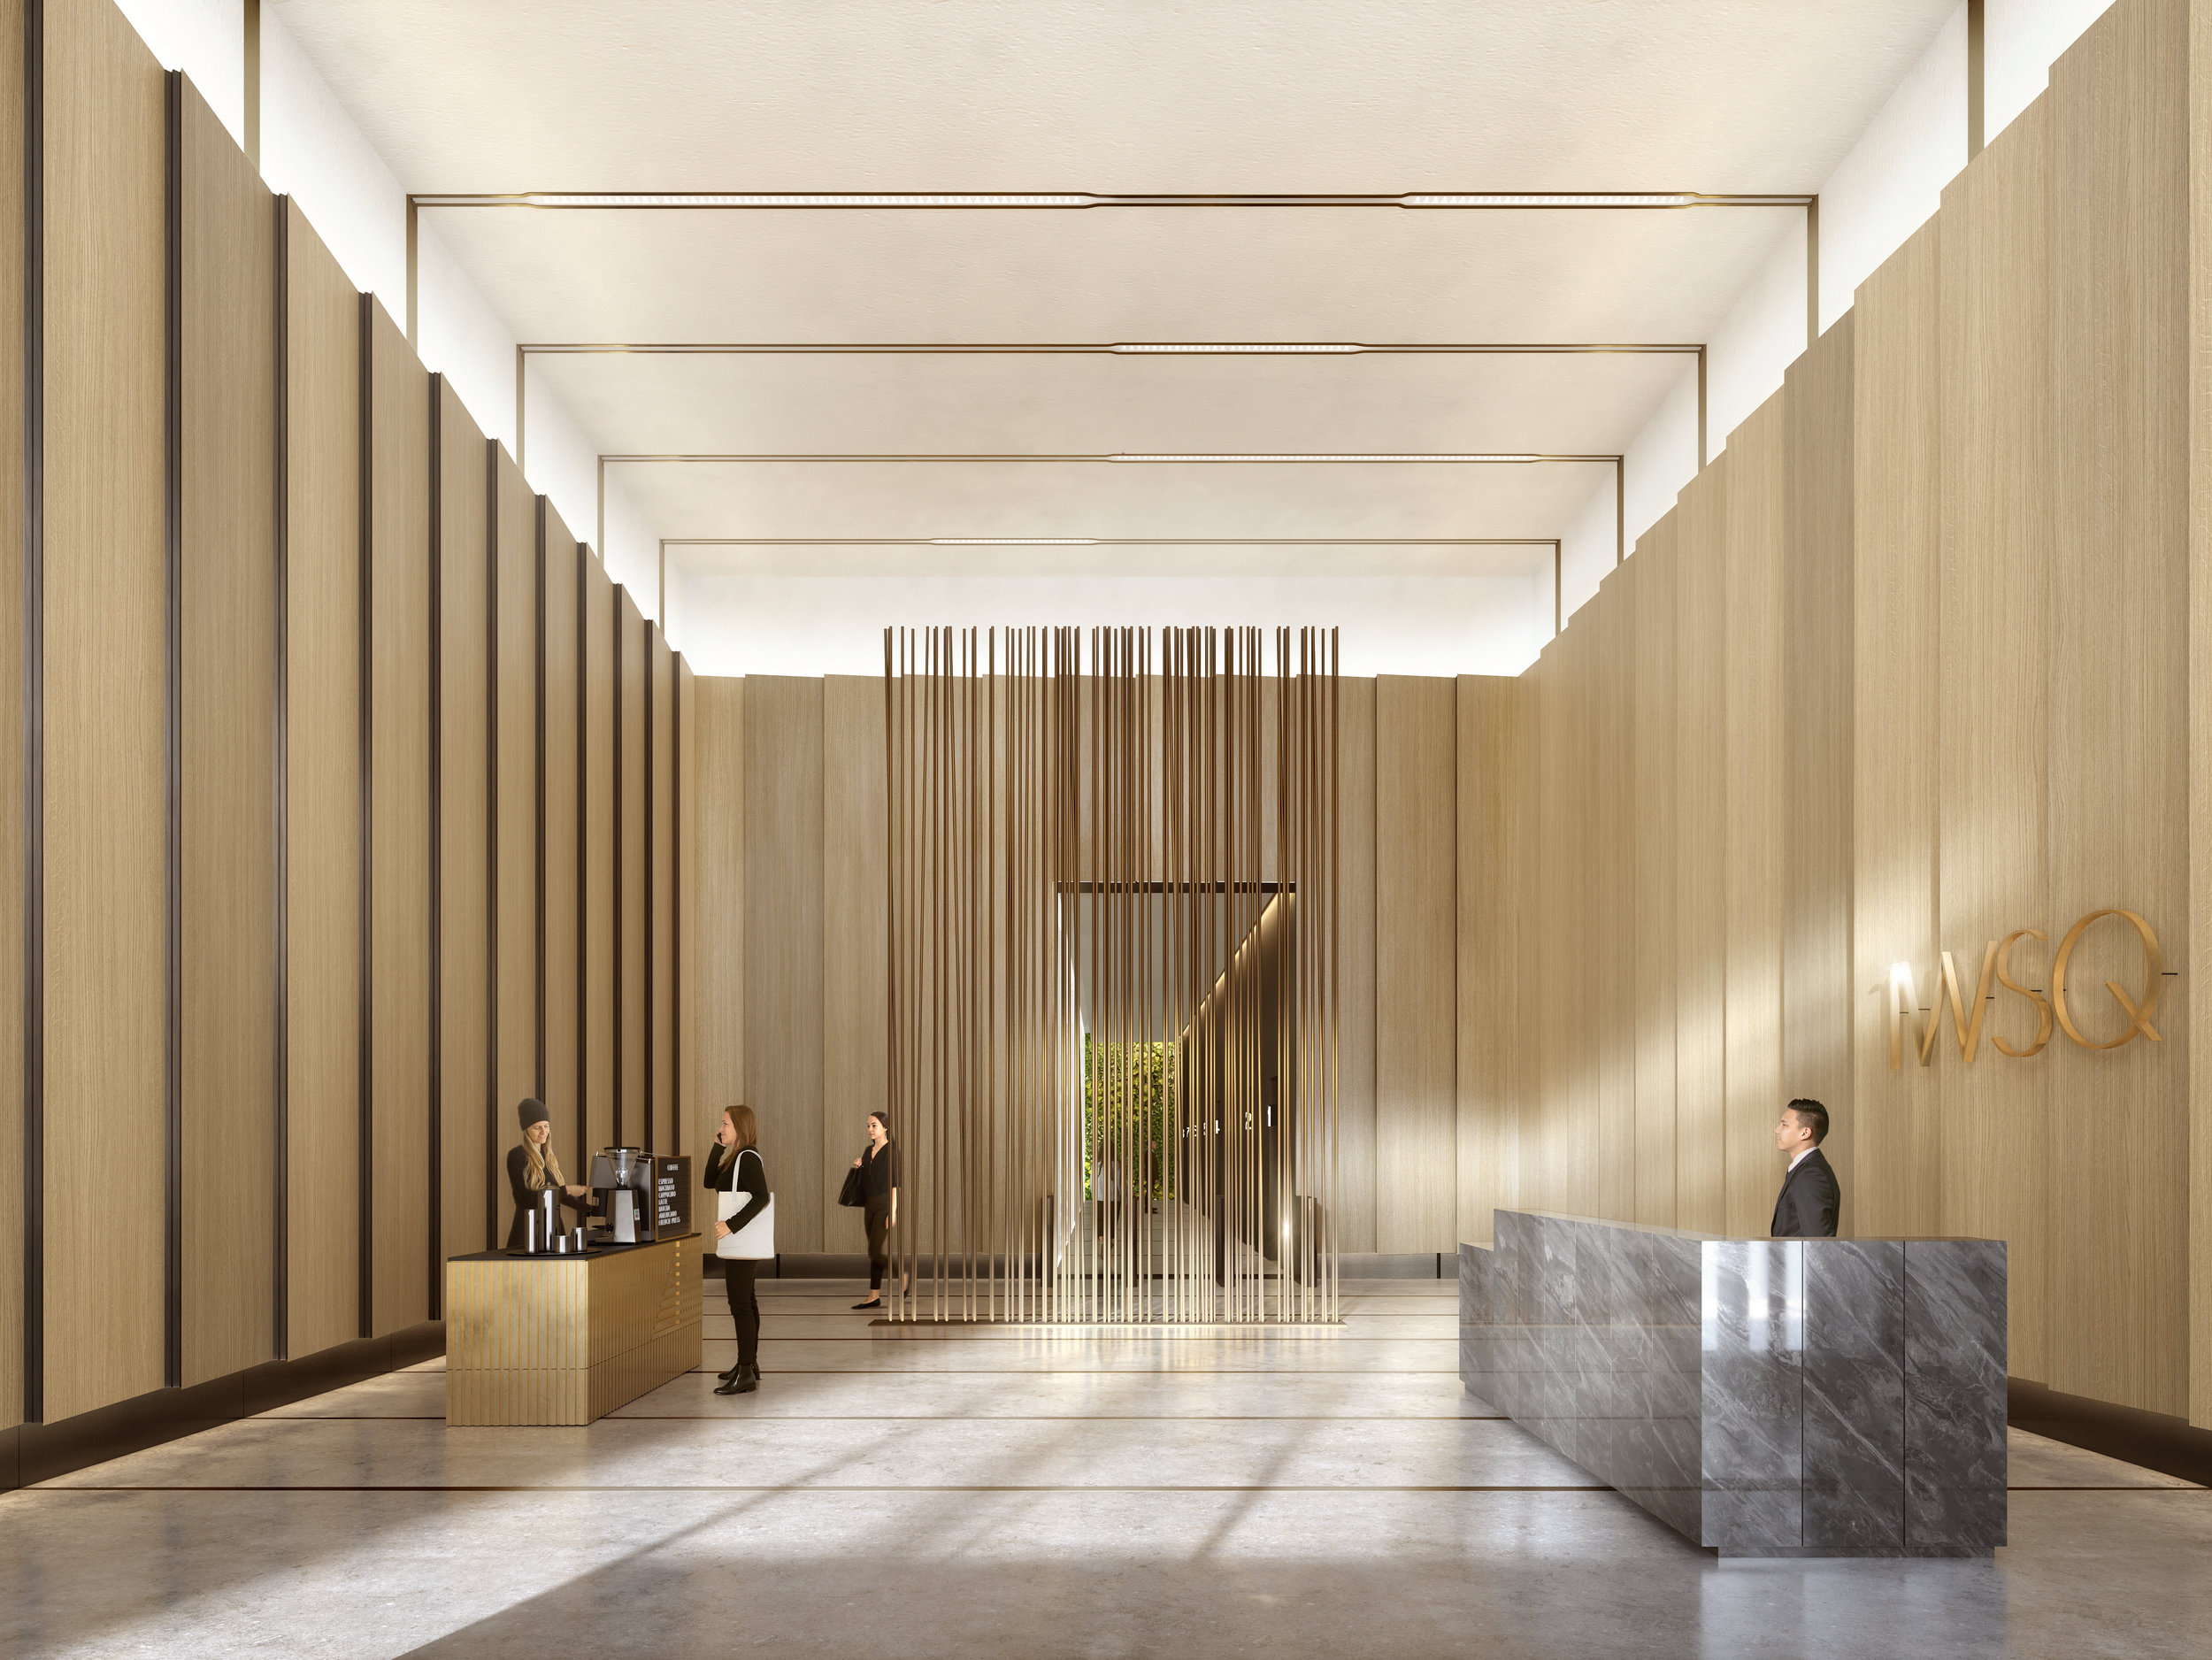 The lobby of the upcoming 1 Willoughby Square. Rendering by DBOX, courtesy of FXCollaborative.